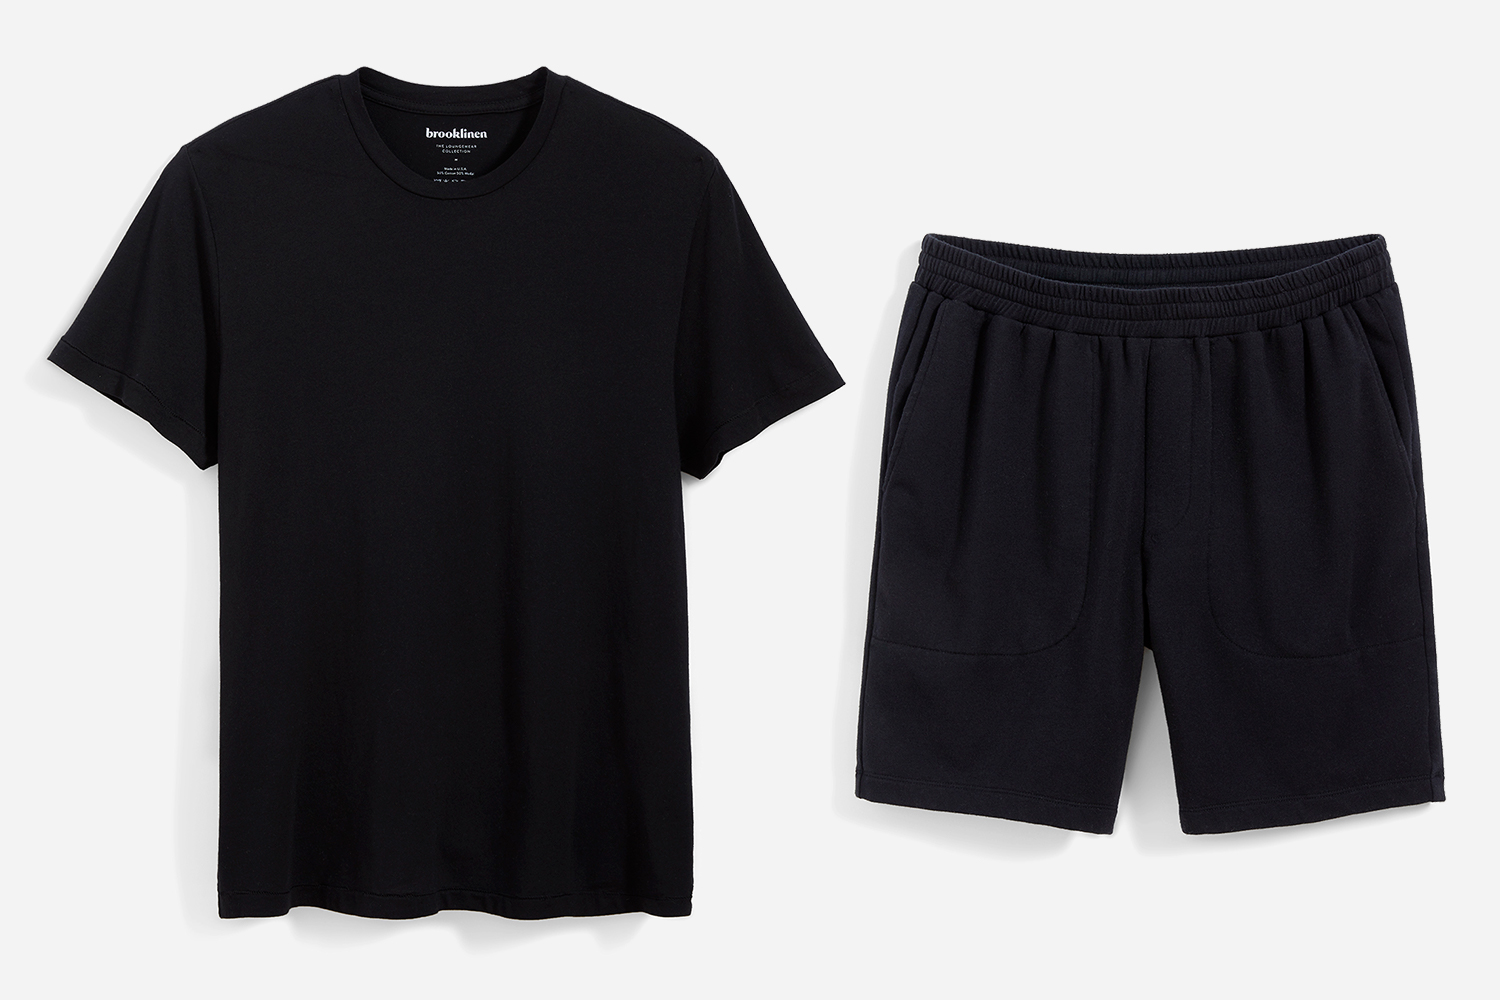 Brooklinen Prospect Tee and Bowery Short